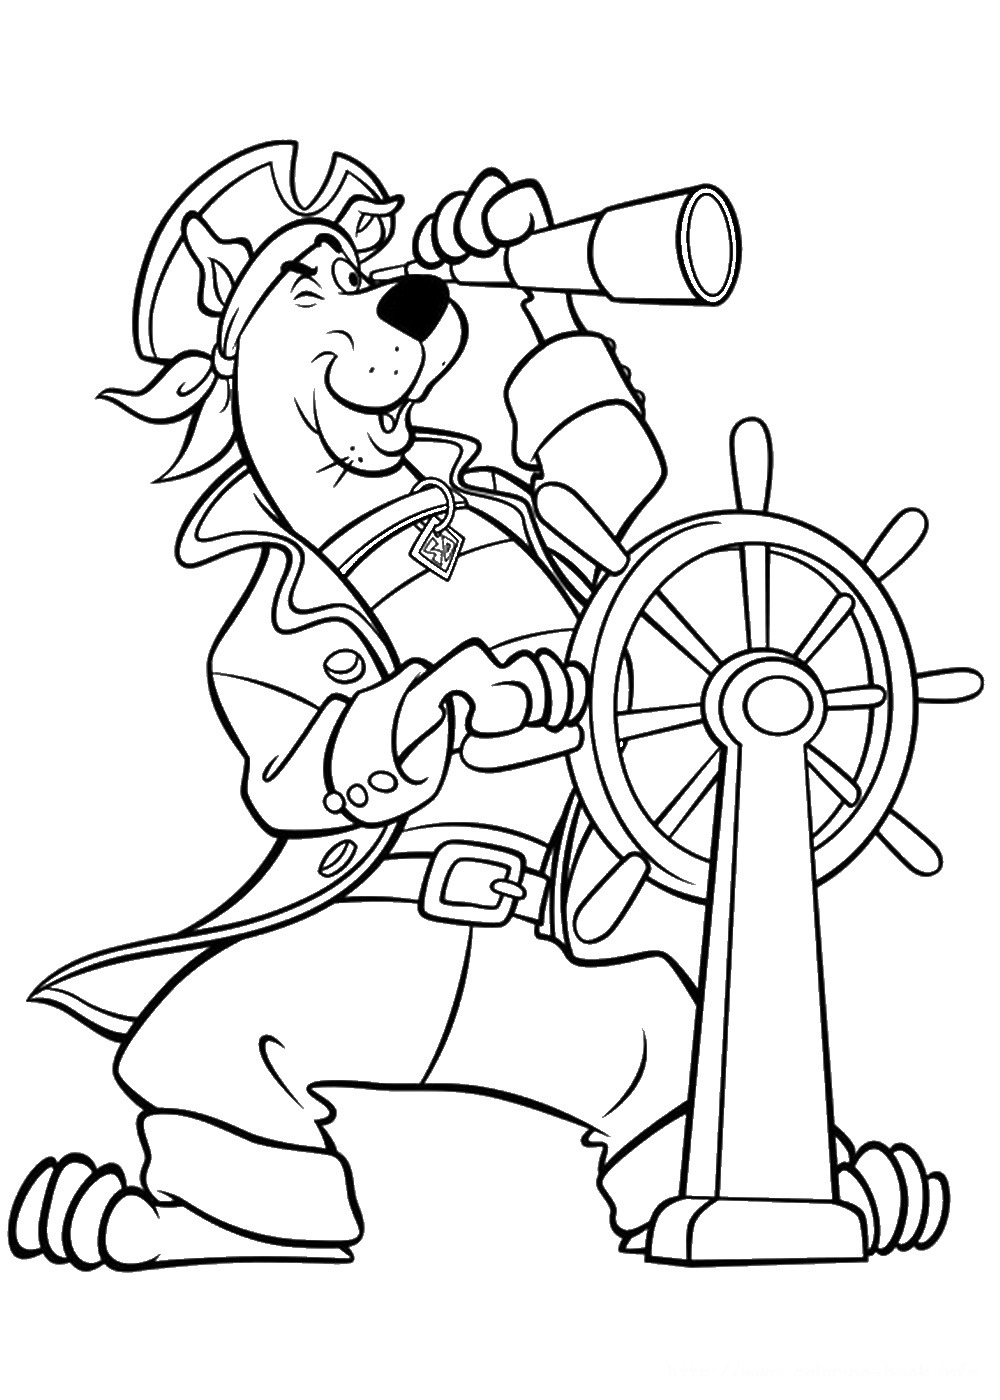 coloring pages of scobby doo - photo#25